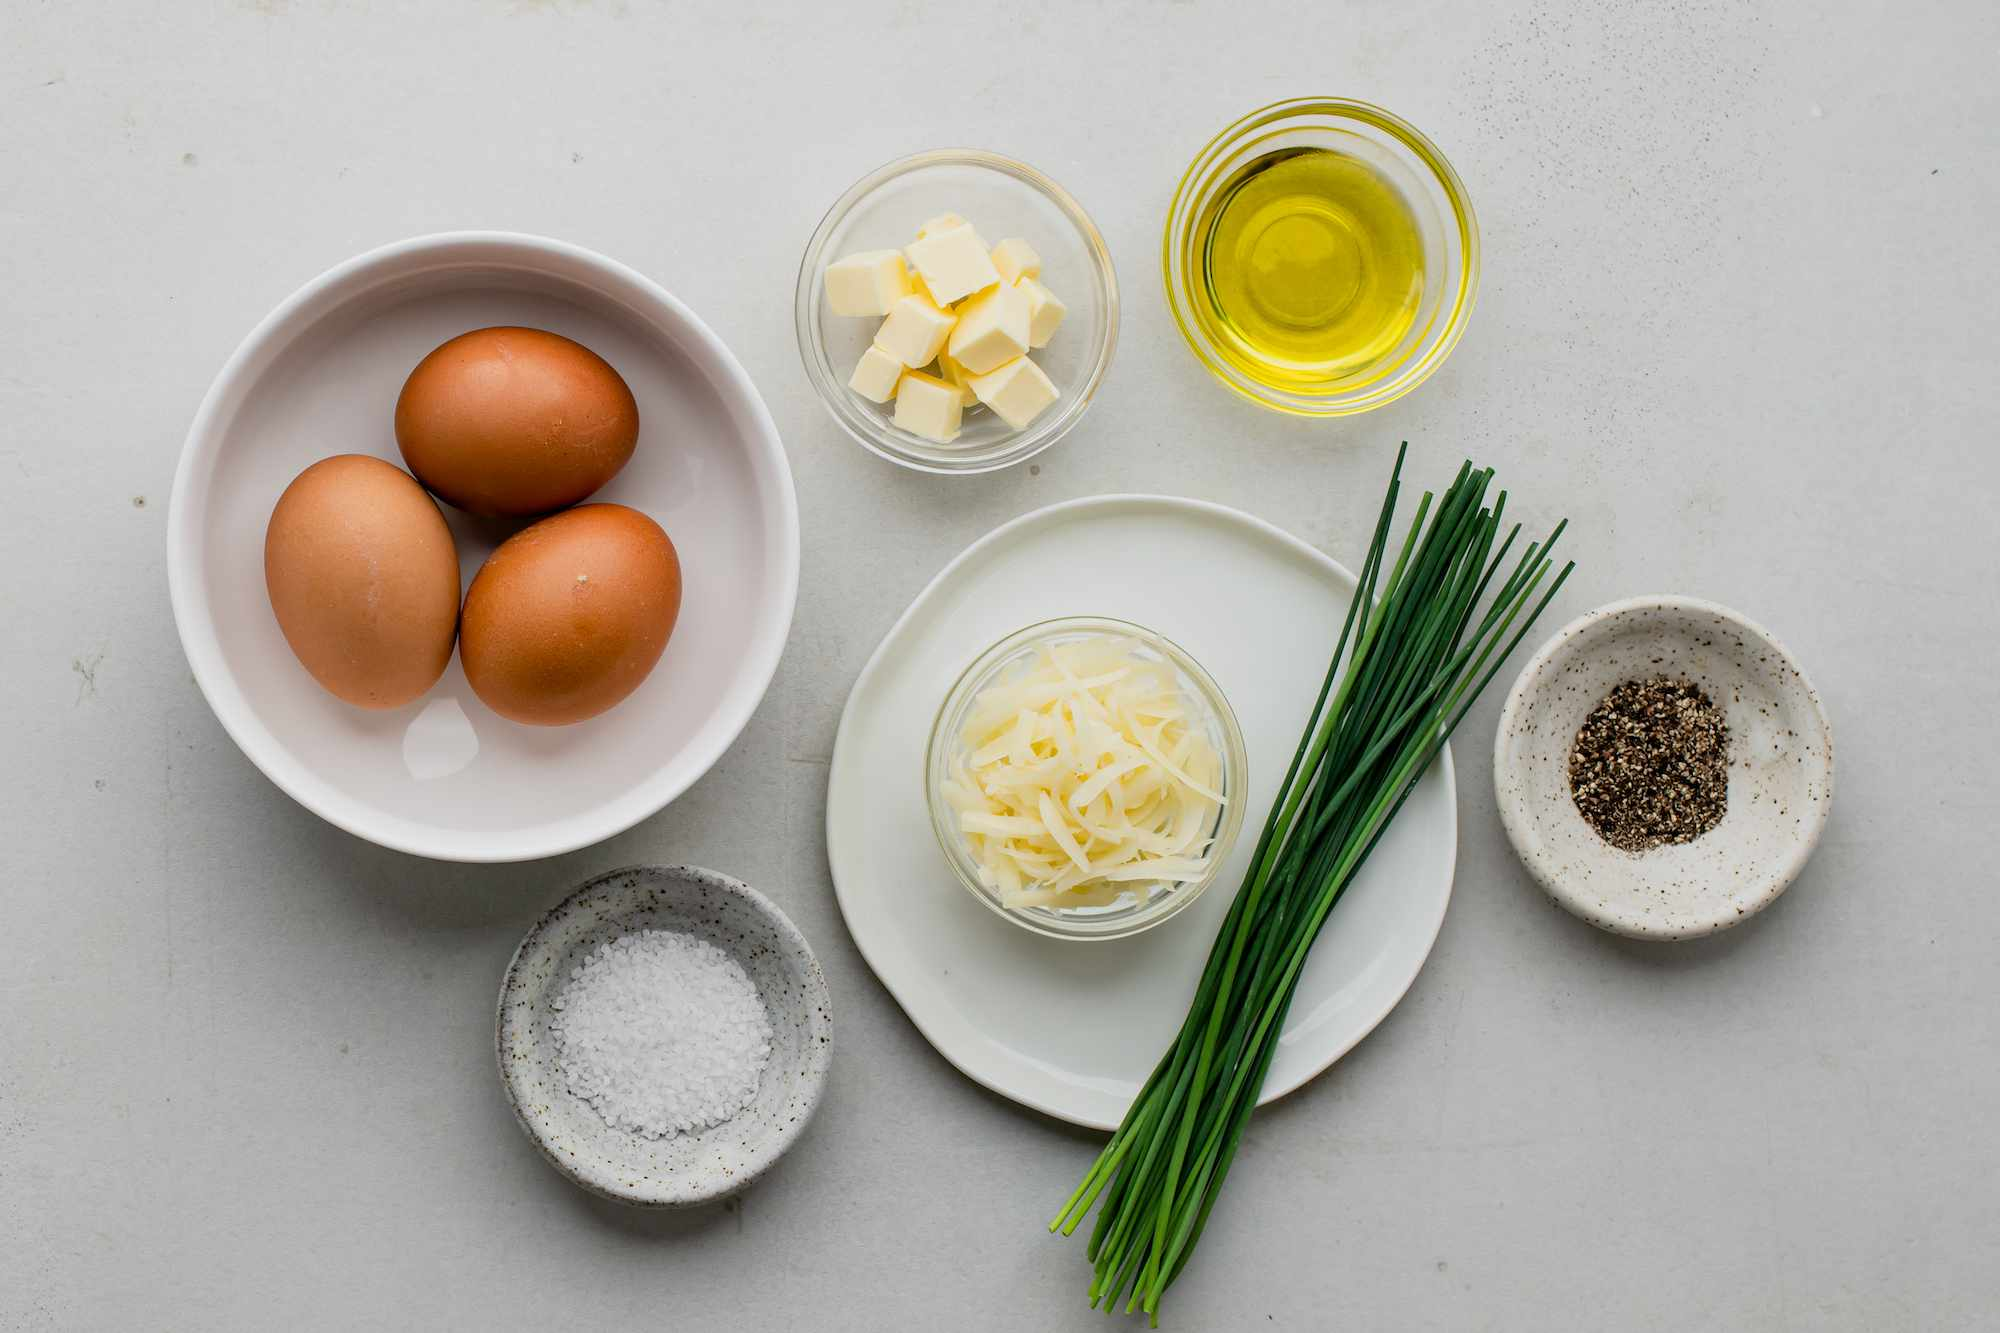 Ingredients for French omelet